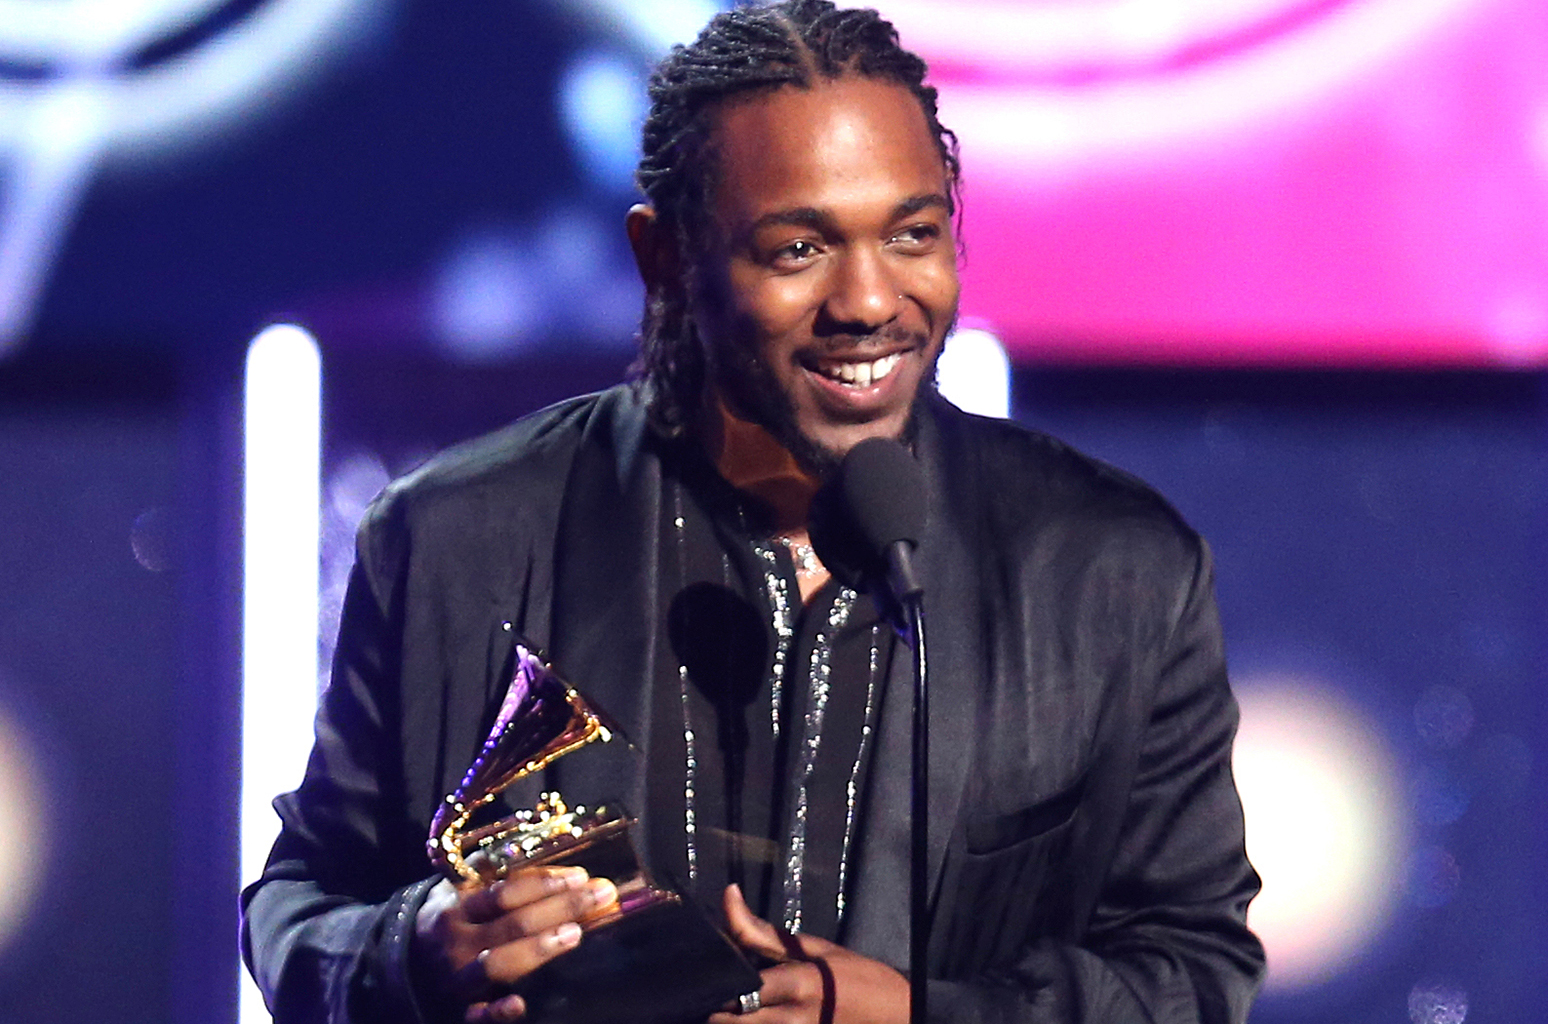 Kendrick Lamar, Bruno Mars and Ed Sheeran were the biggest winners at the 2018 Billboard Music Awards (BBMAs) held on Sunday.